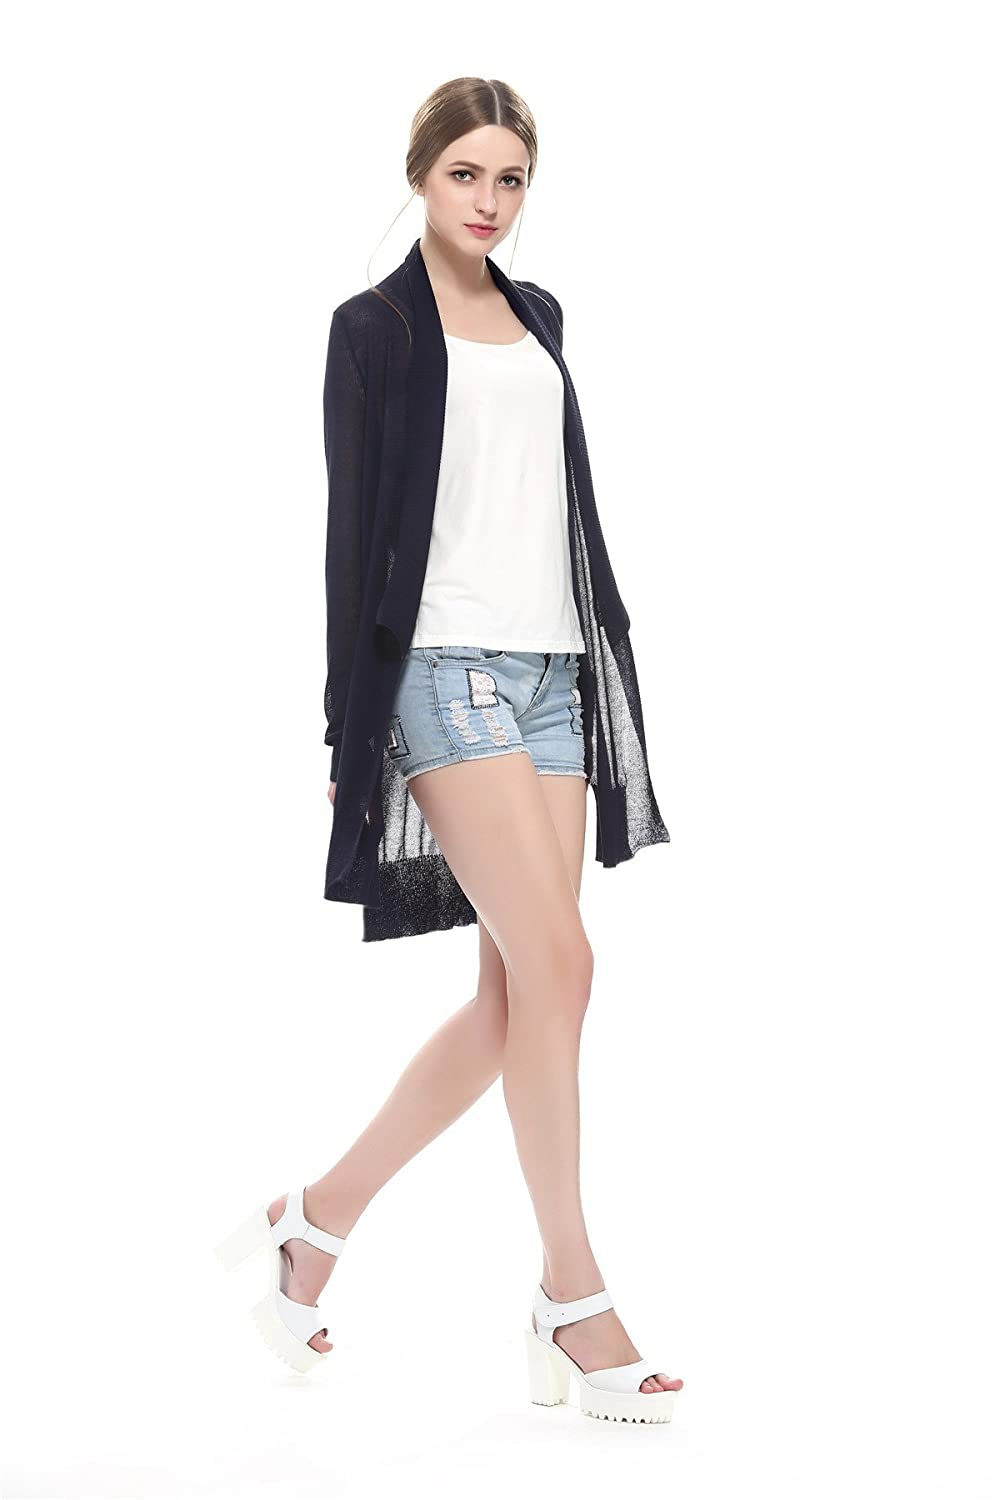 Escalier Women's Light Casual Irregular knit cardigan Sheer Kimono Cardigan Blouses